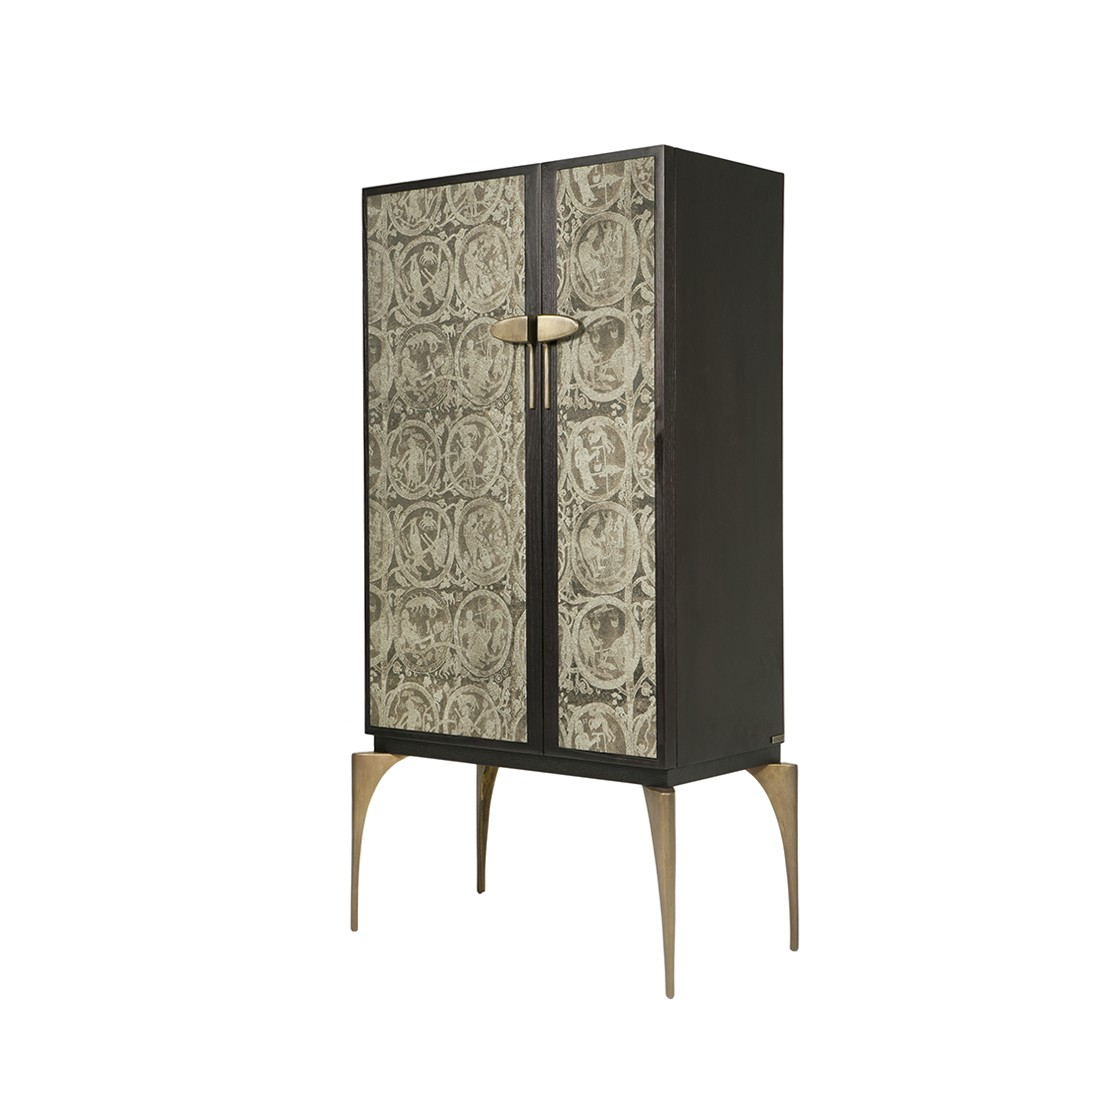 cabinet vintage armoire haut de gamme idkrea collection rennes. Black Bedroom Furniture Sets. Home Design Ideas